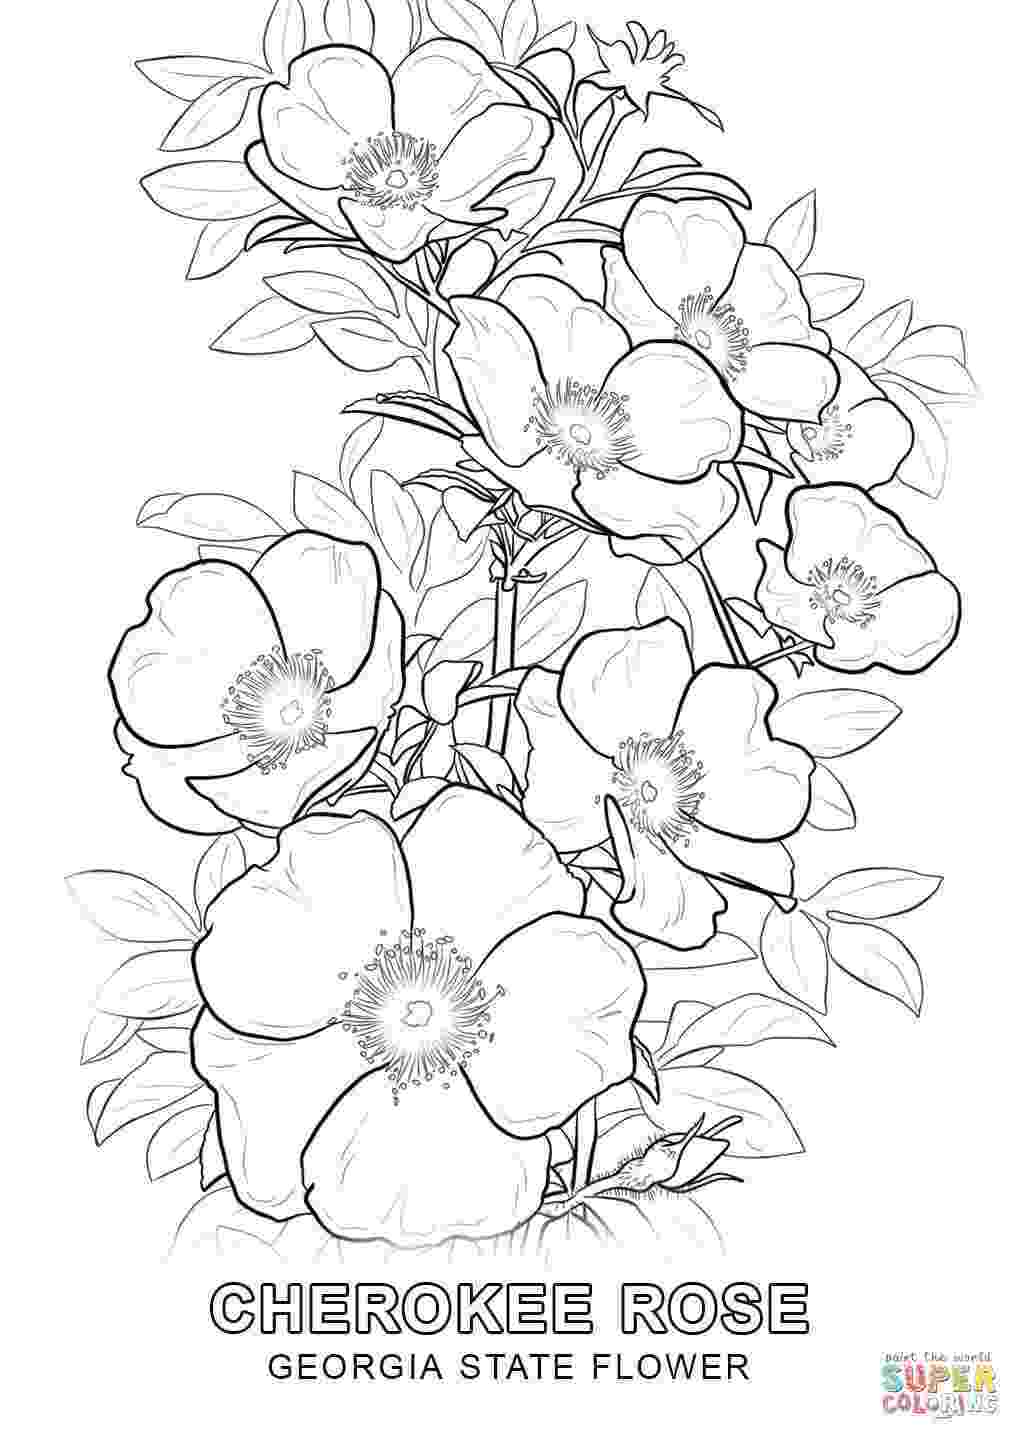 mississippi state flower flower coloring boook flower coloring pages for kids mississippi flower state